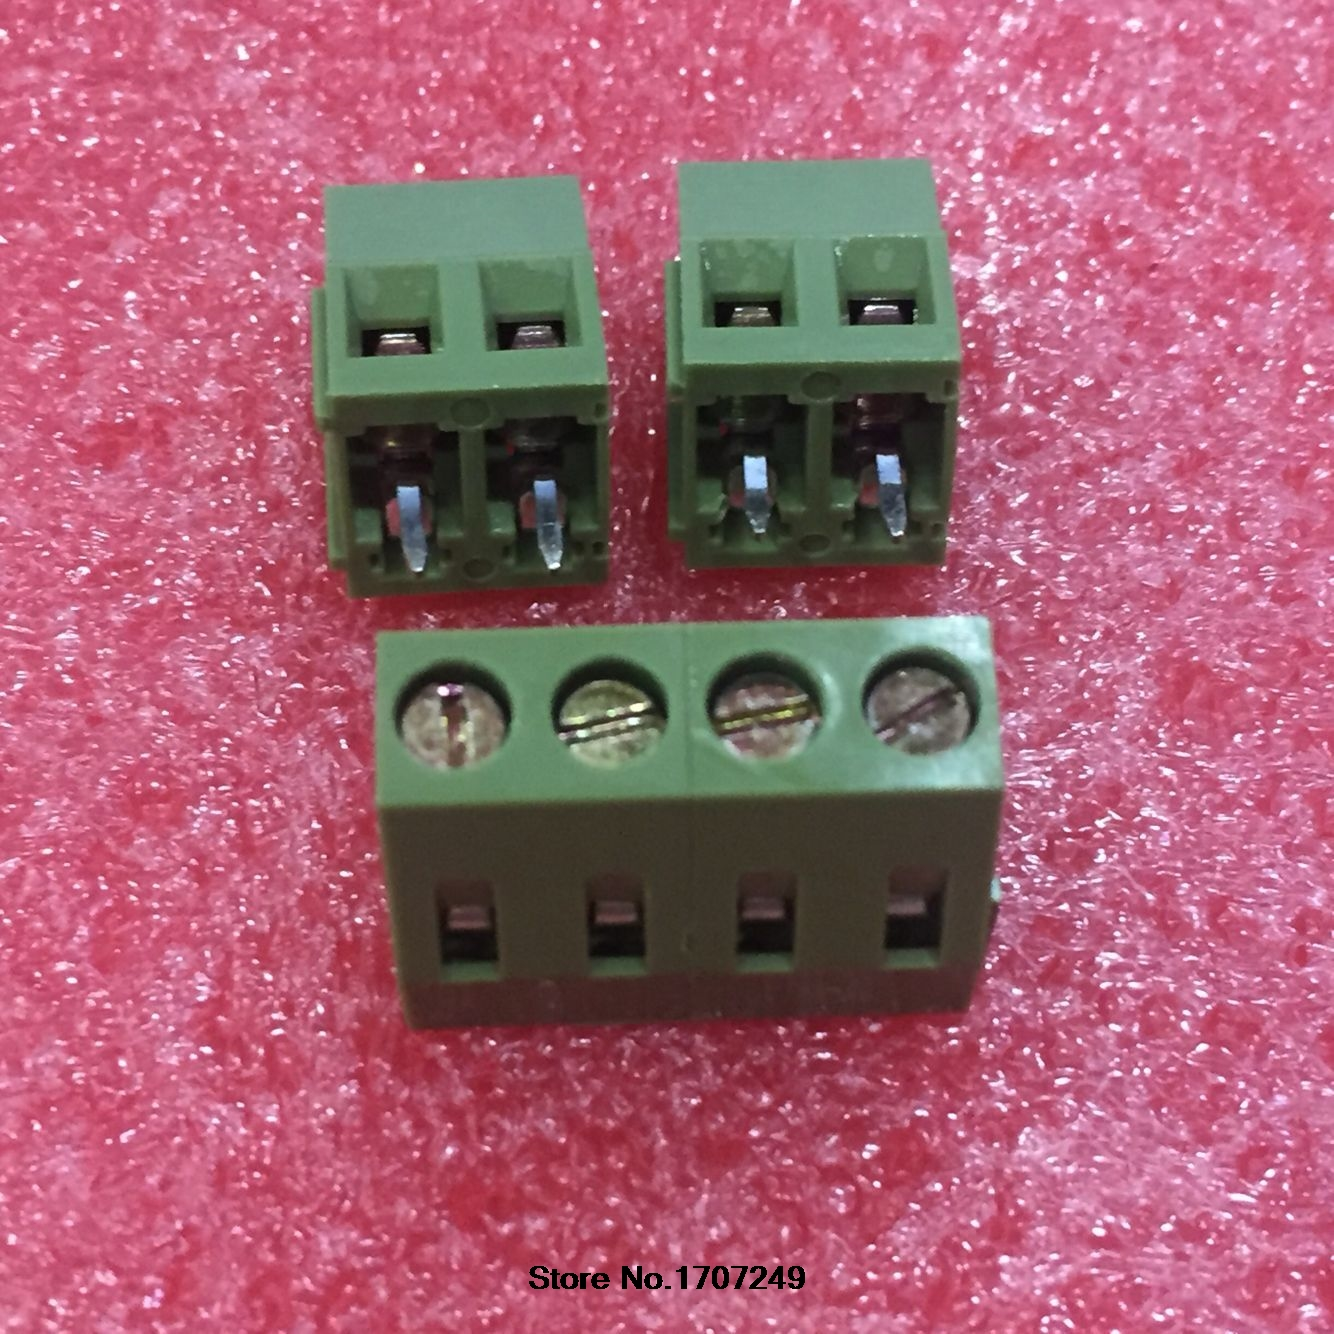 Supply 100pcs Kf128-5.08-2p Kf128-2p Kf128 2pin 5.08mm High Quality Environmental Copper Feet Pcb Screw Terminal Block Connector Rohs Unequal In Performance Connectors & Terminals Home Improvement